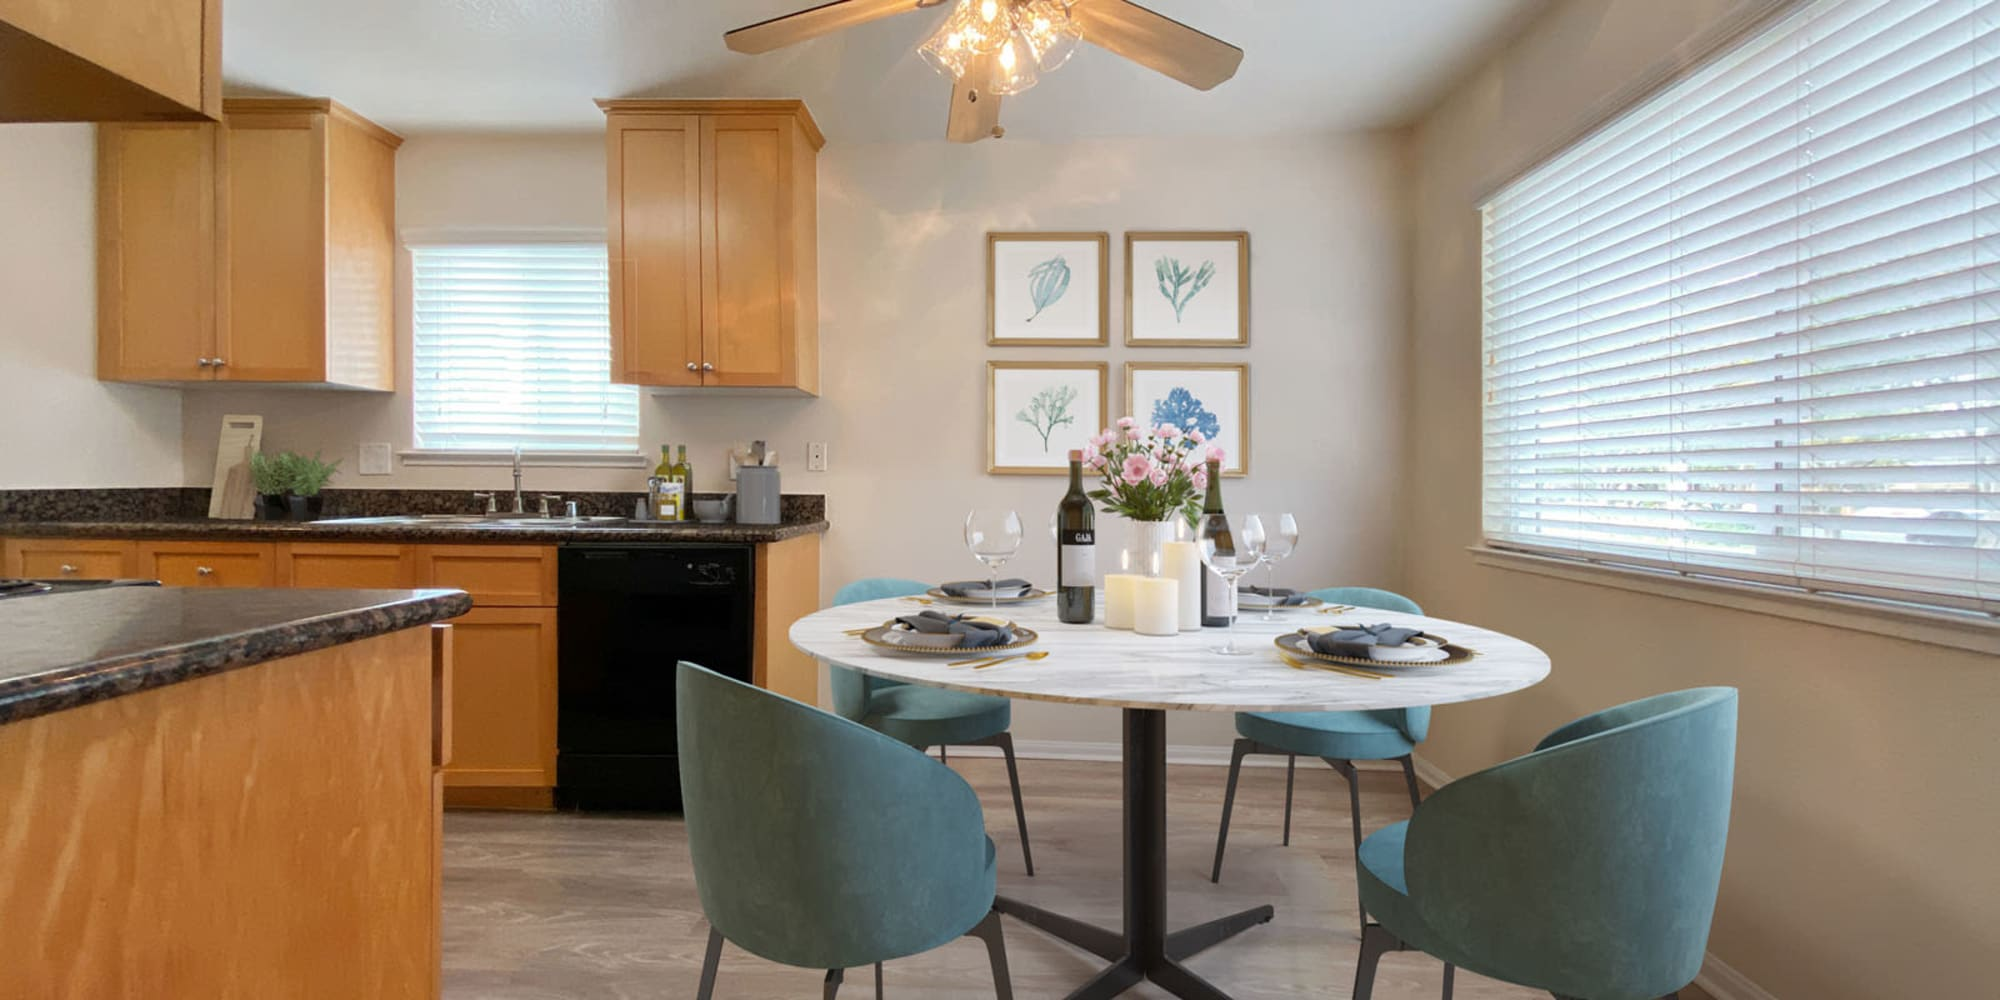 Dining nook with a ceiling fan overhead next to a model home's kitchen at Pleasanton Place Apartment Homes in Pleasanton, California